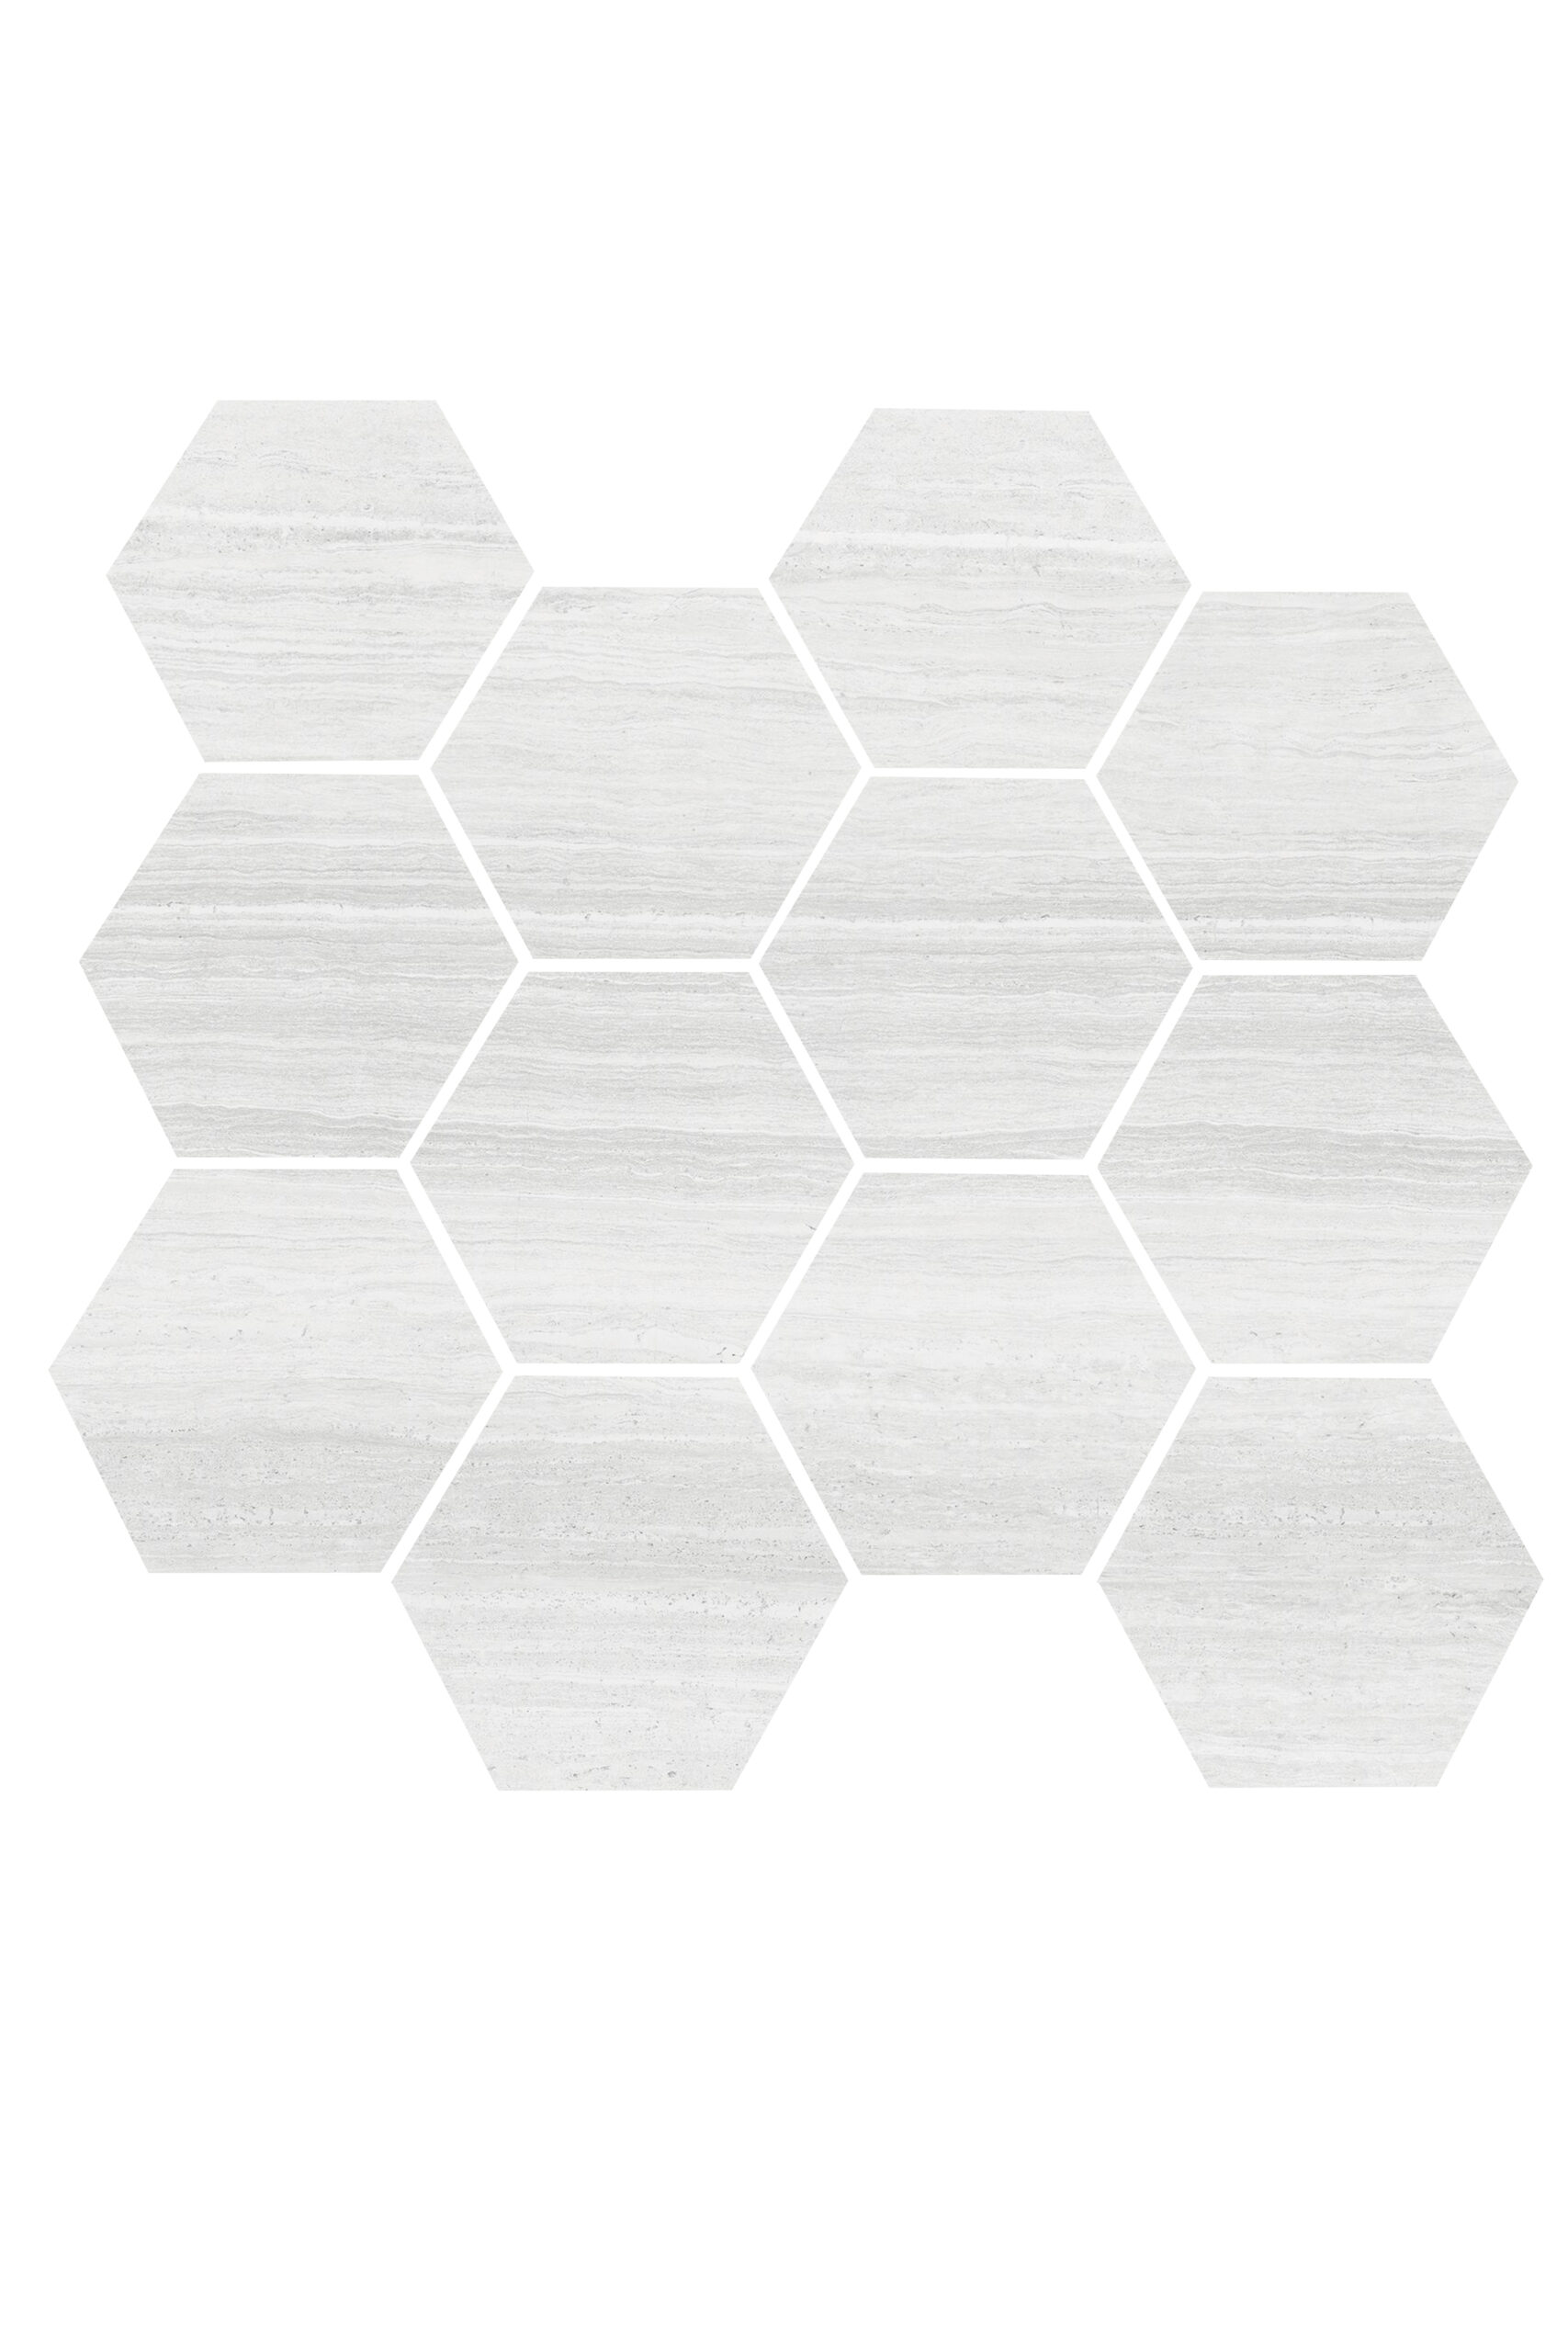 "Pebble Beach 3.25"" Hex Mosaic Matte"